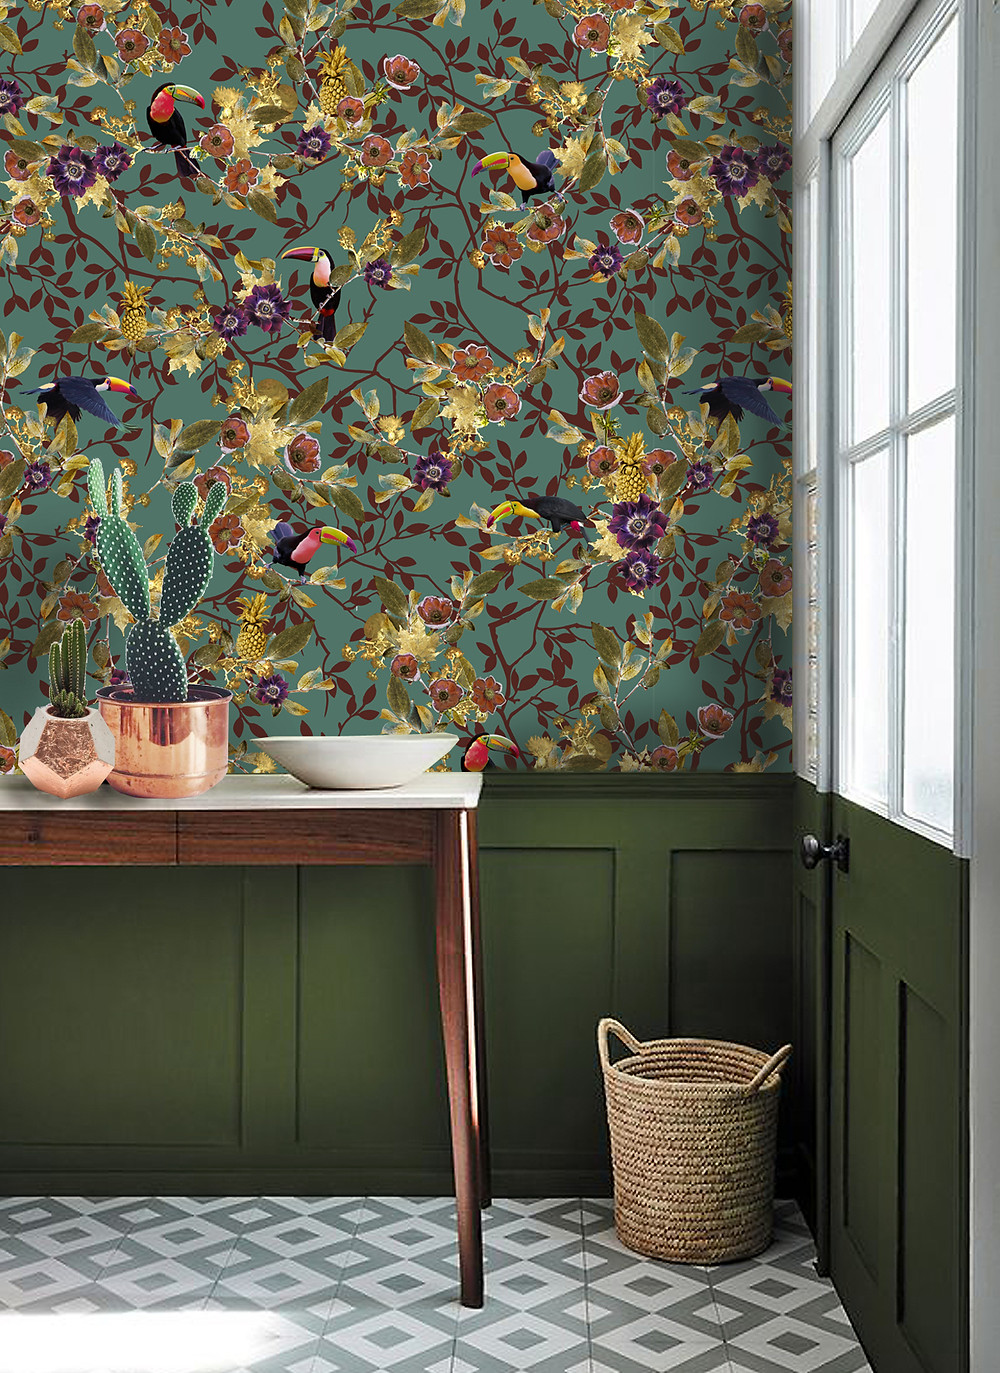 Green interior styling, hallway decor with tropical wallpaper and toucan print